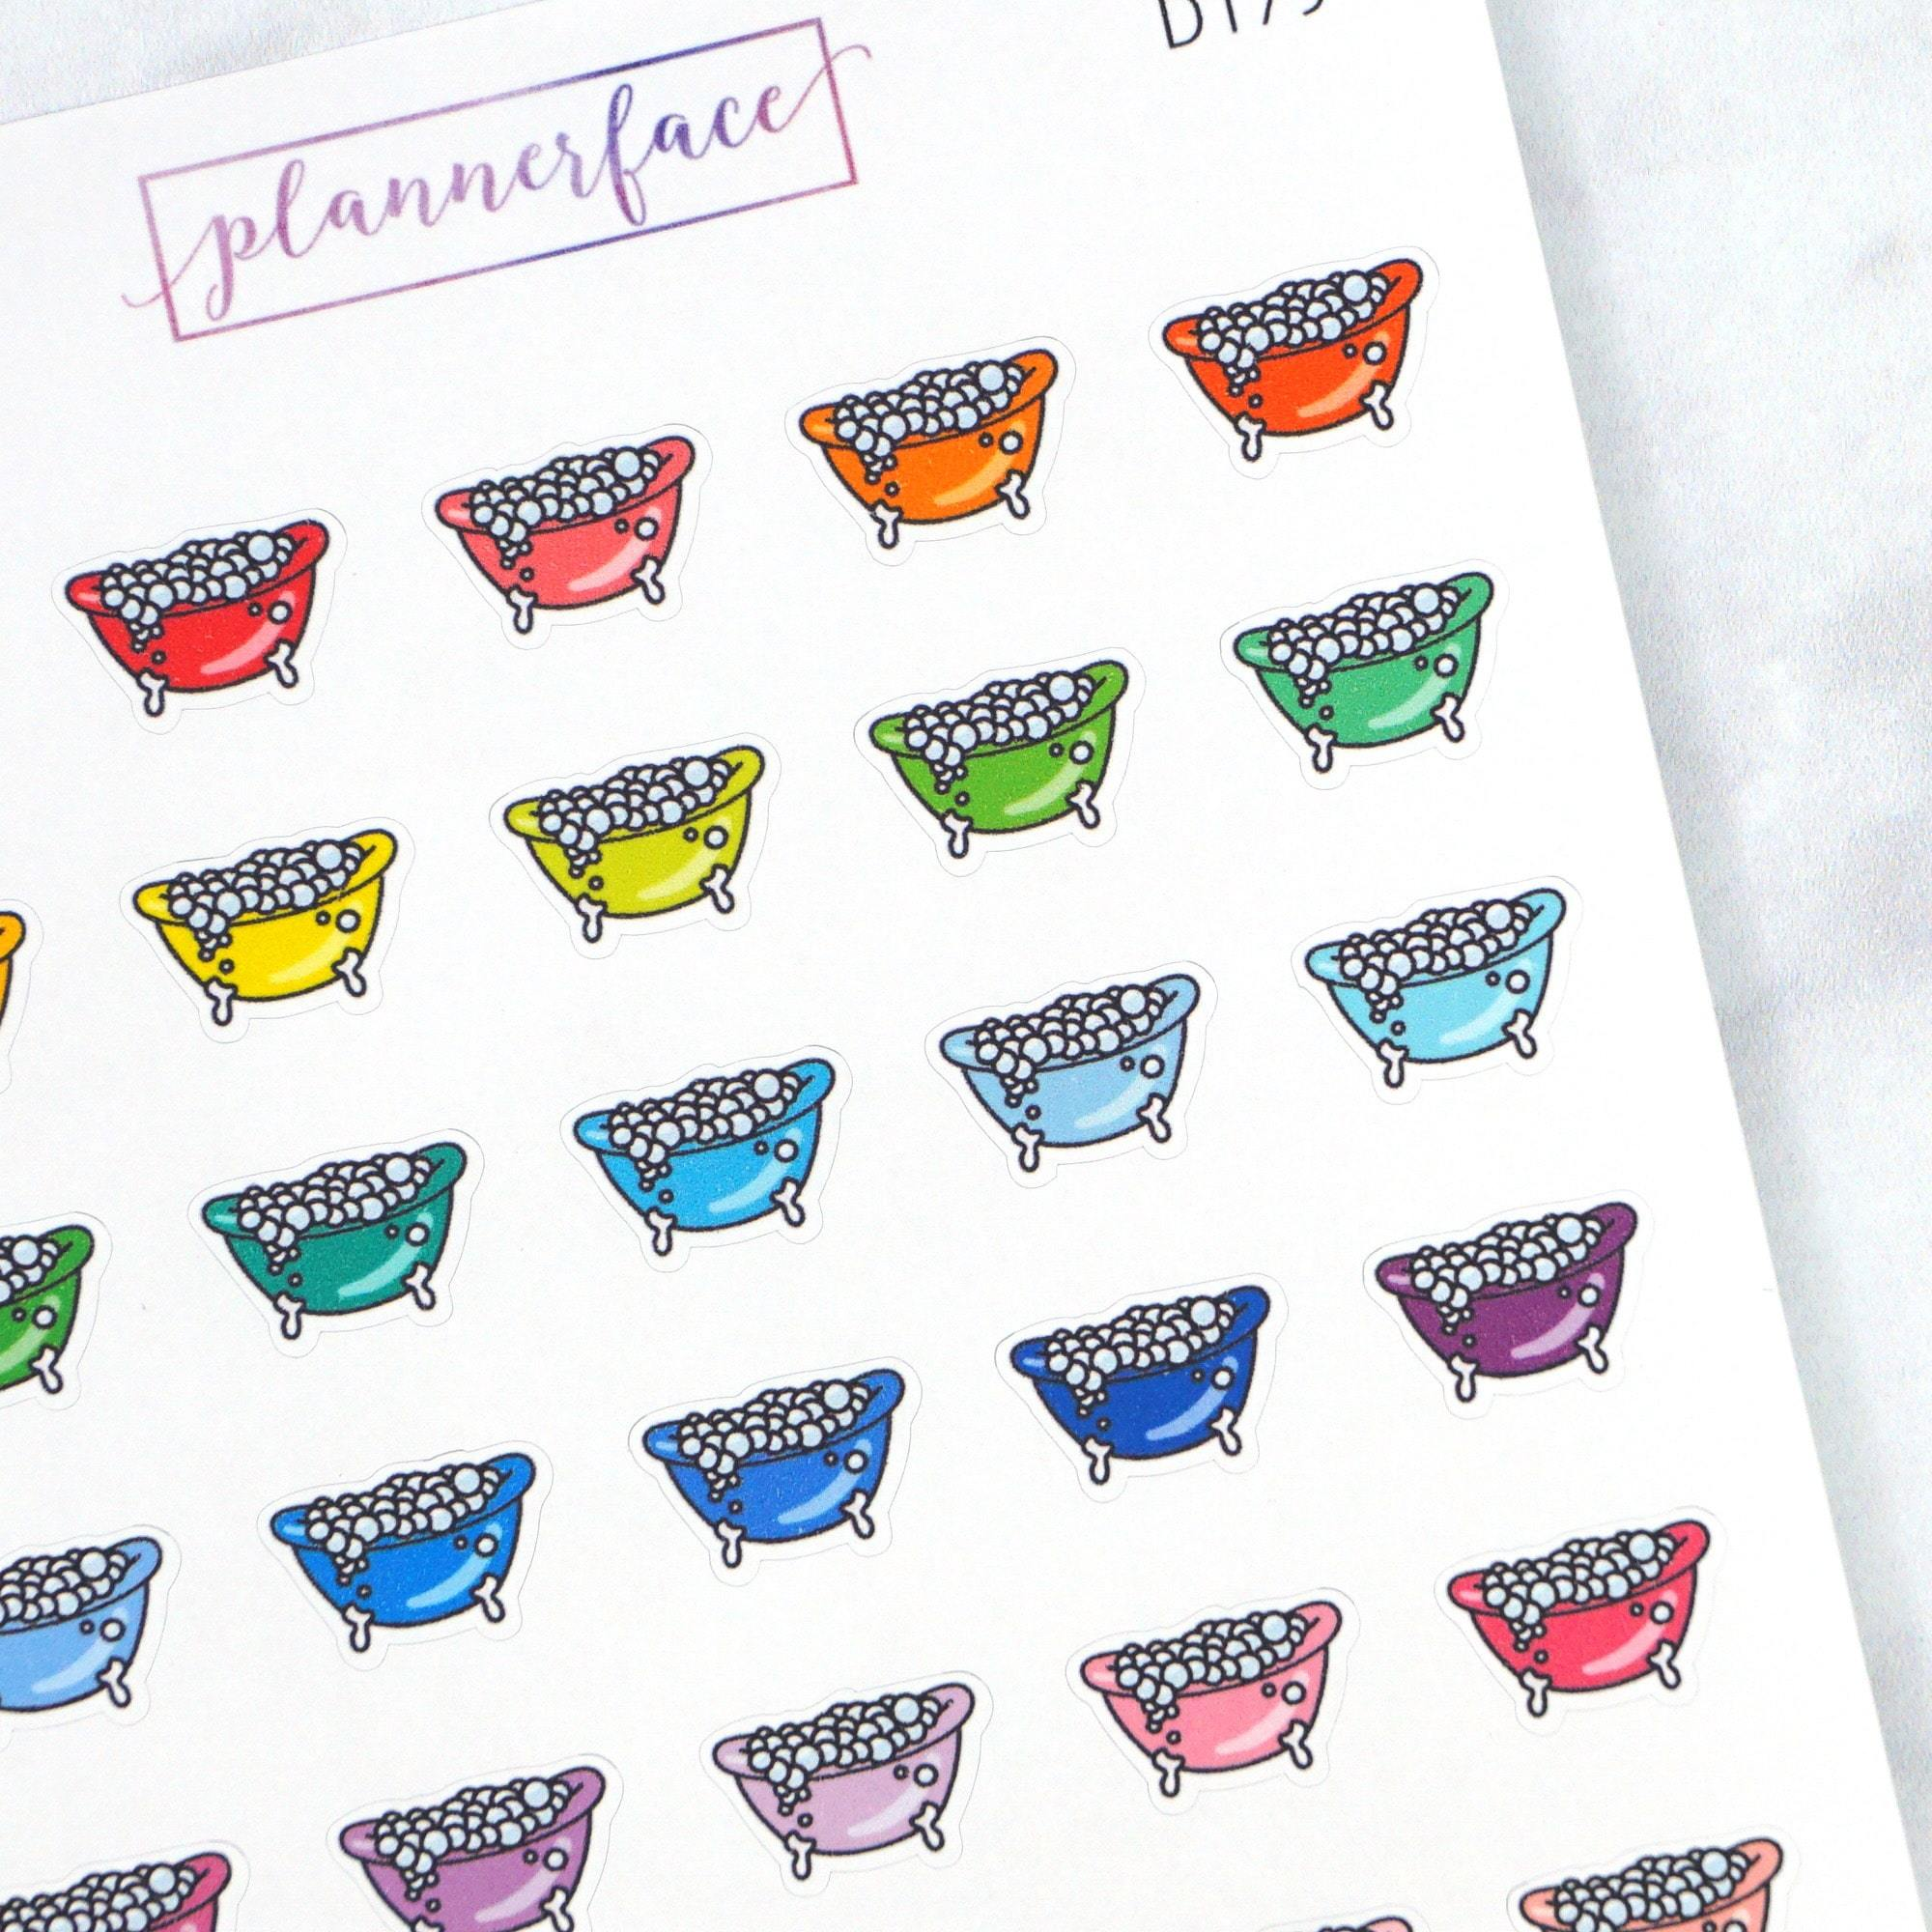 Plannerface Bubble Bath Multicolour Doodles Planner Stickers